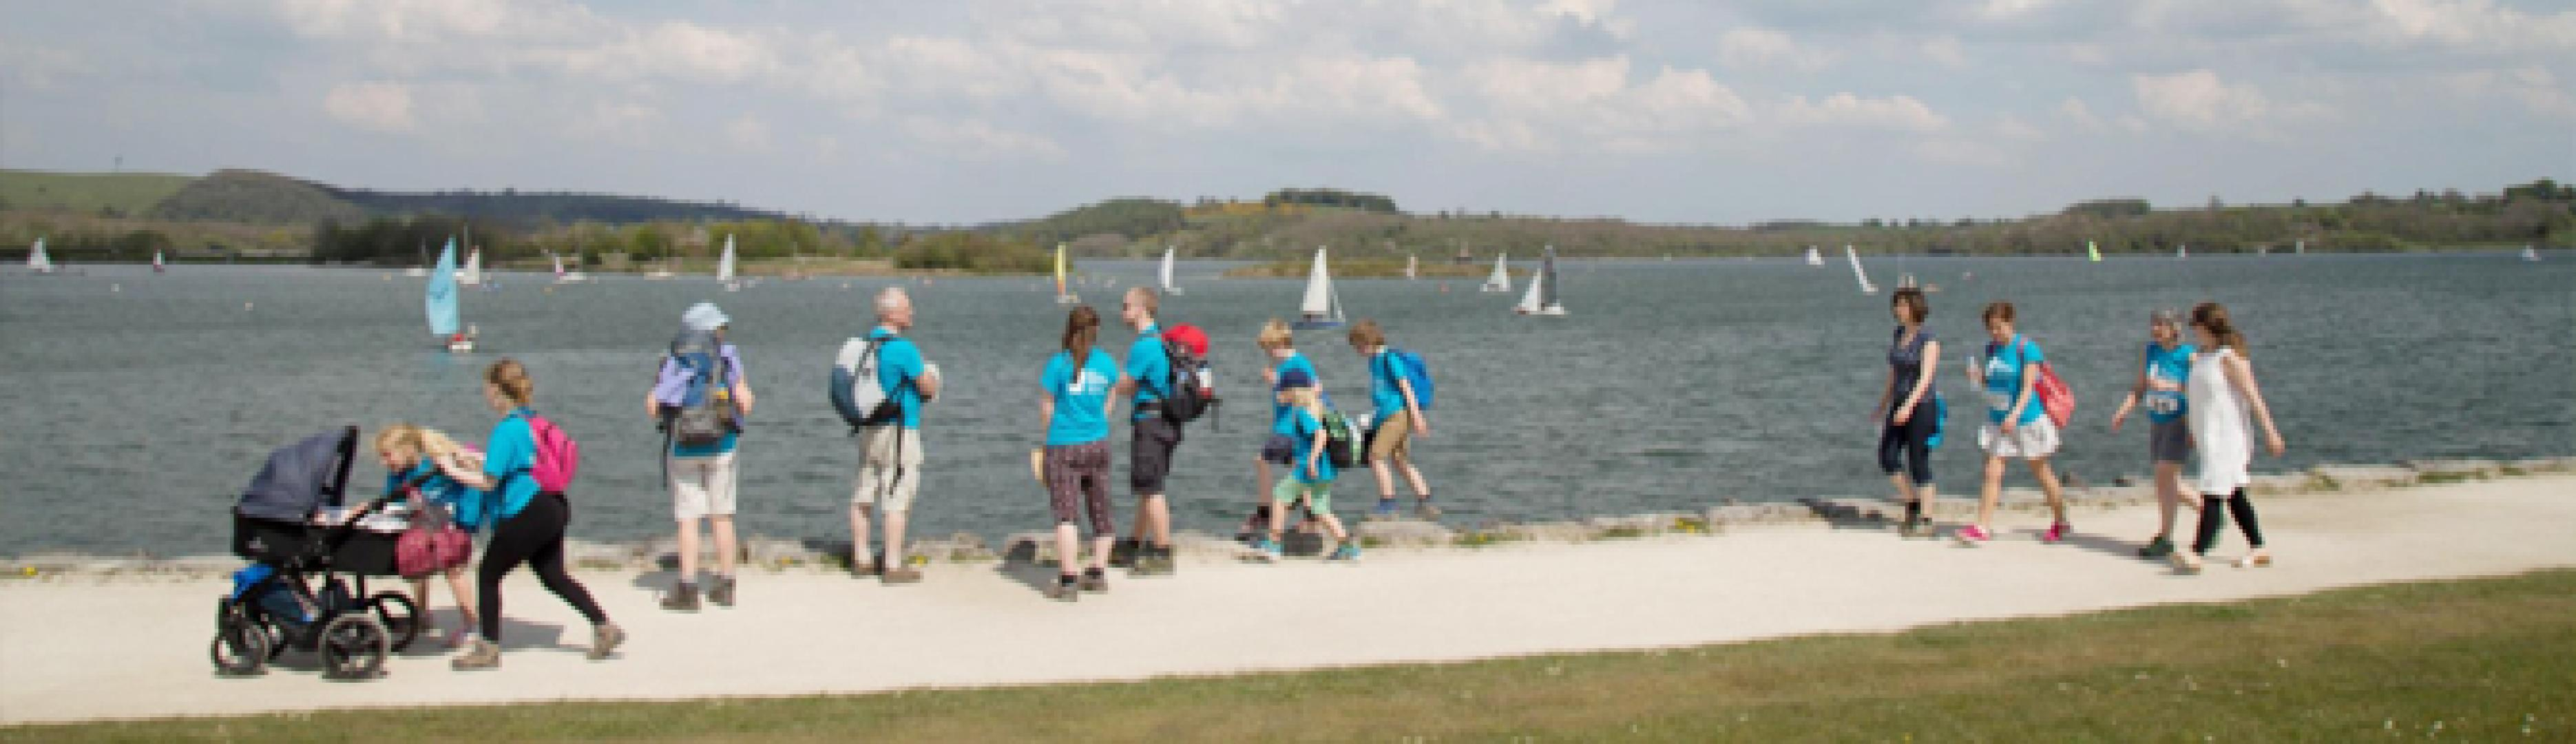 Contours staff walking alongside Carsington Water for the Ellen MacArthur Cancer Trust